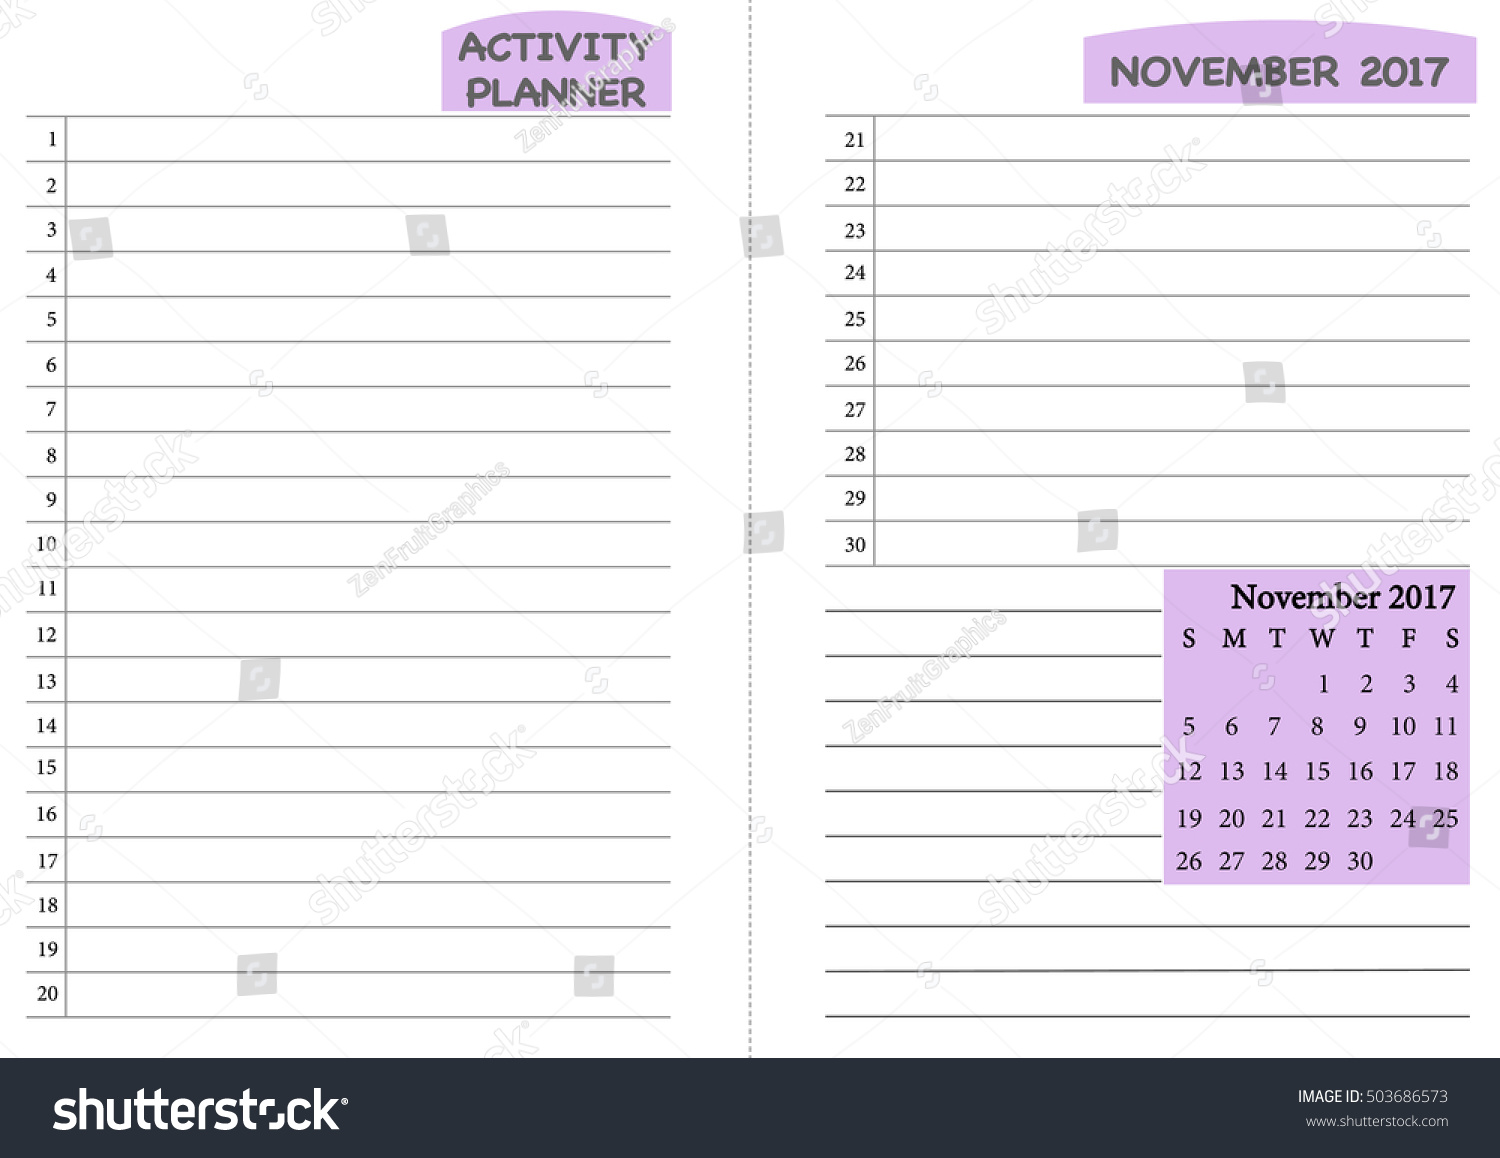 november 2017 calendar template monthly planner template with daily routine check list activity schedule chart